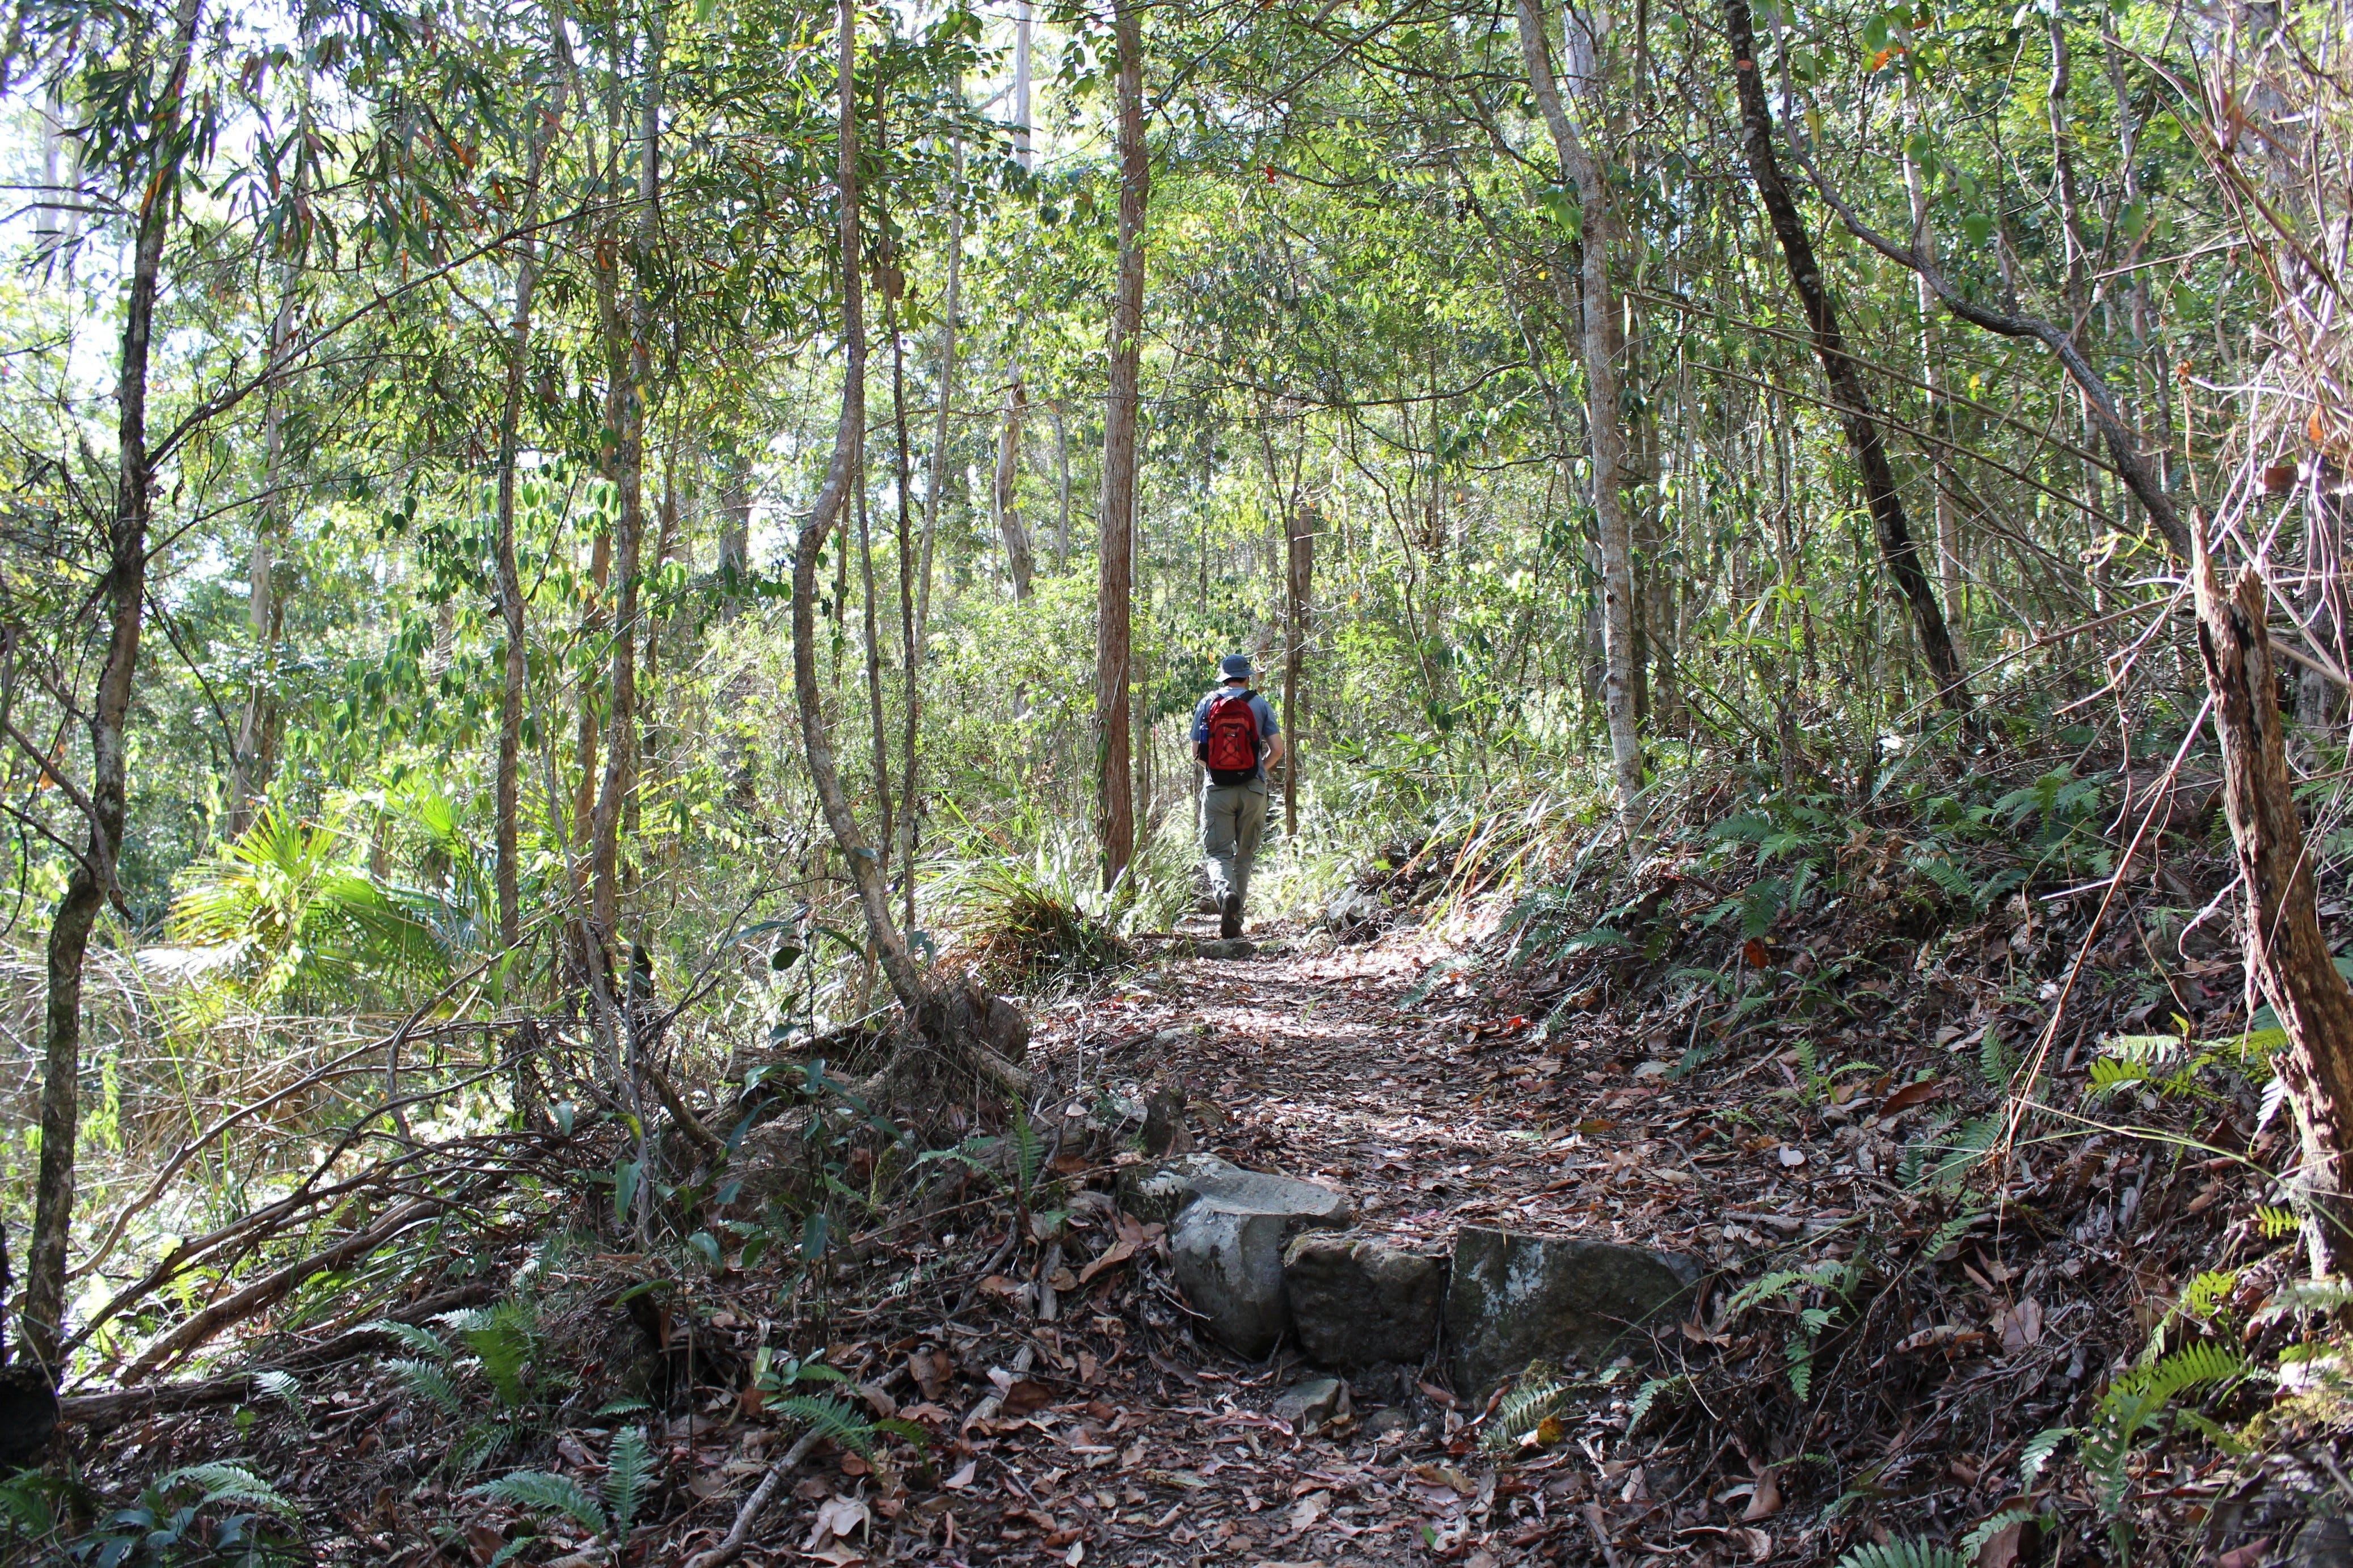 Morelia walking track, D'Aguilar National Park Logo and Images